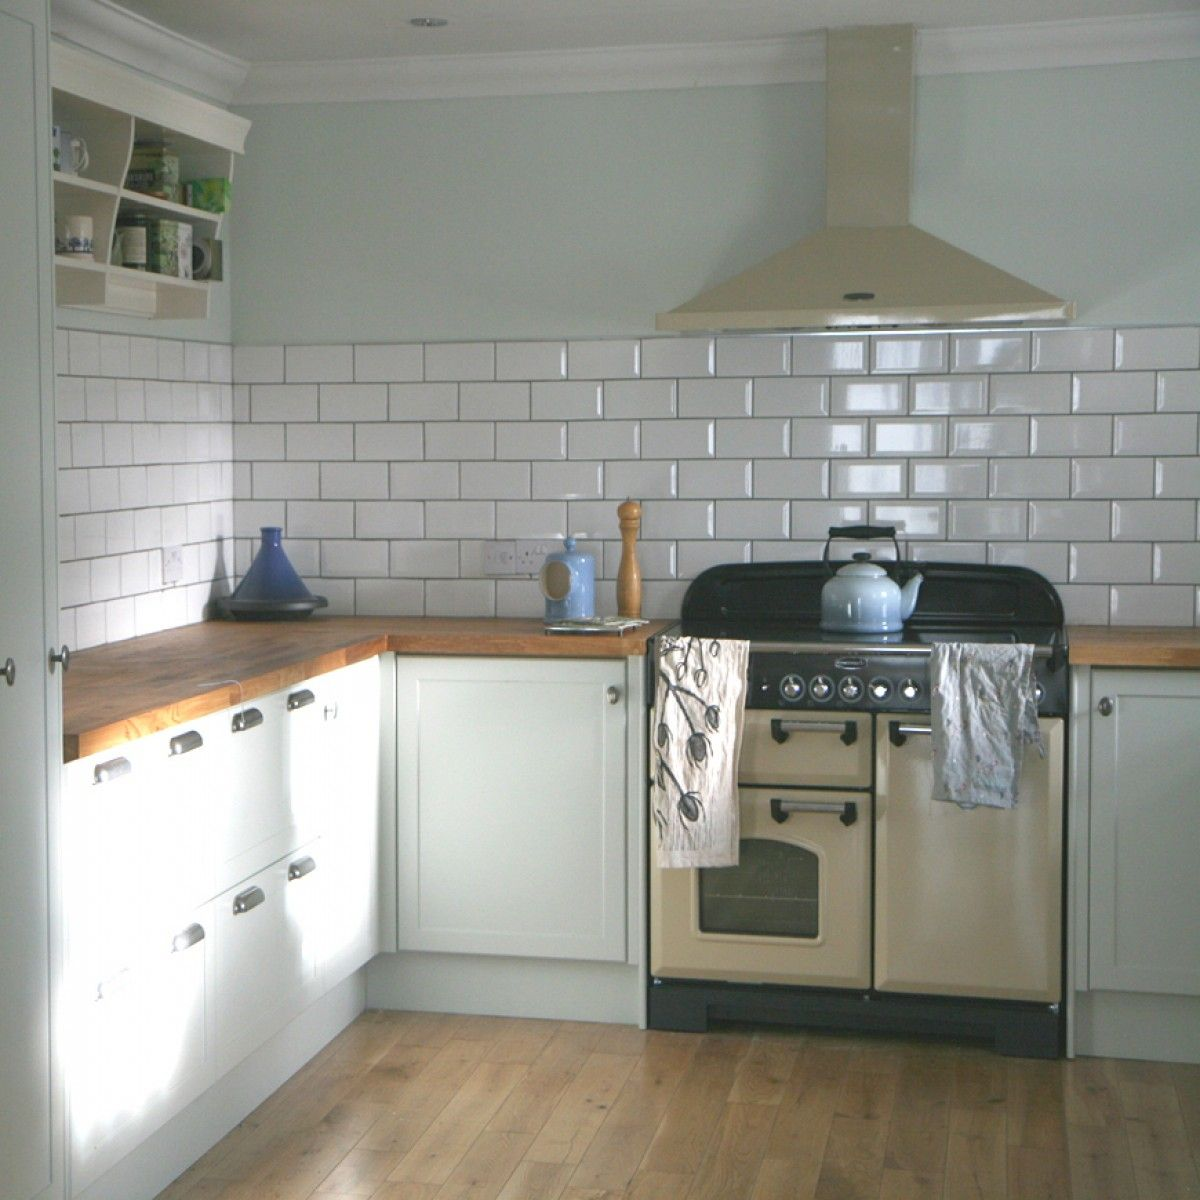 Photo Of Kitchen Tiles: White Subway Tile In Modern Kitchen